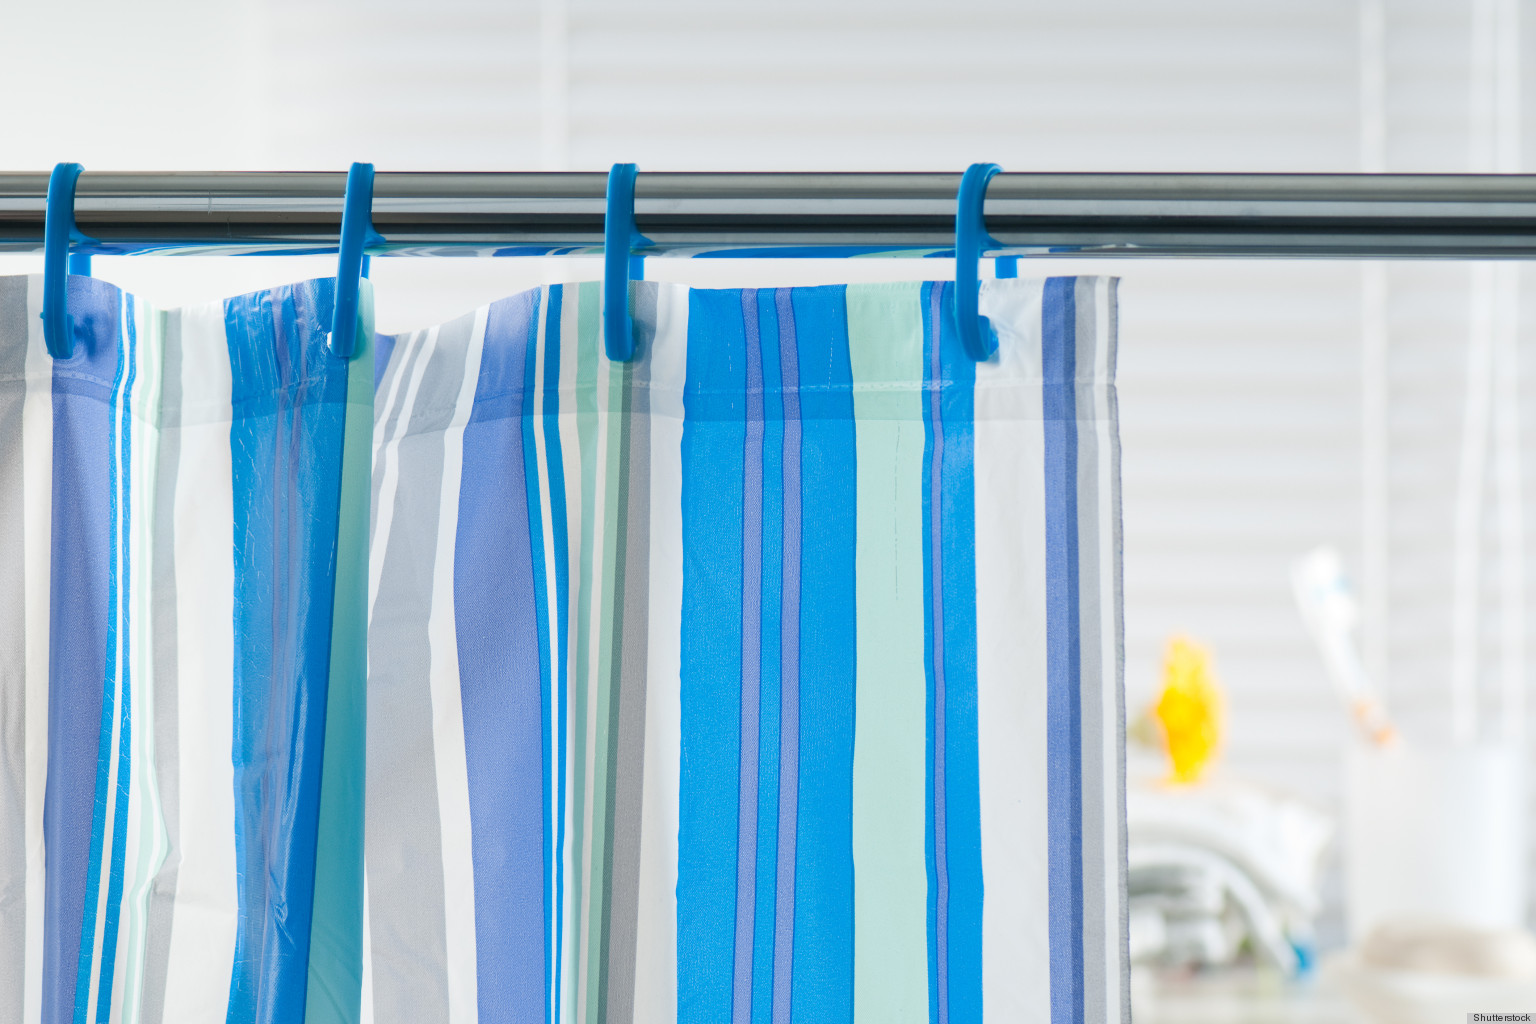 Prevent Mildew From Growing On Shower Curtains With...Salt? | HuffPost